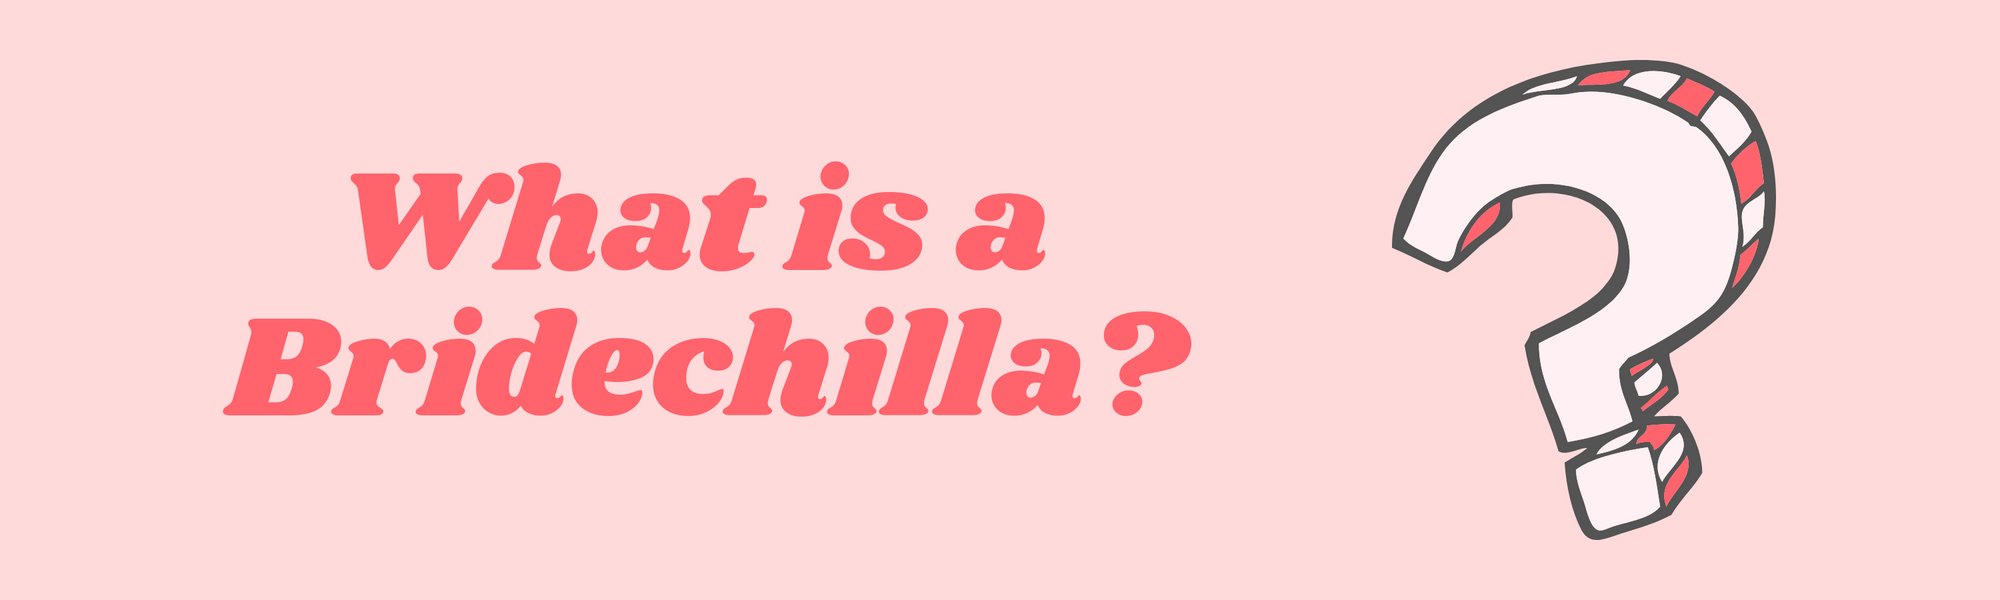 What is a Bridechilla?